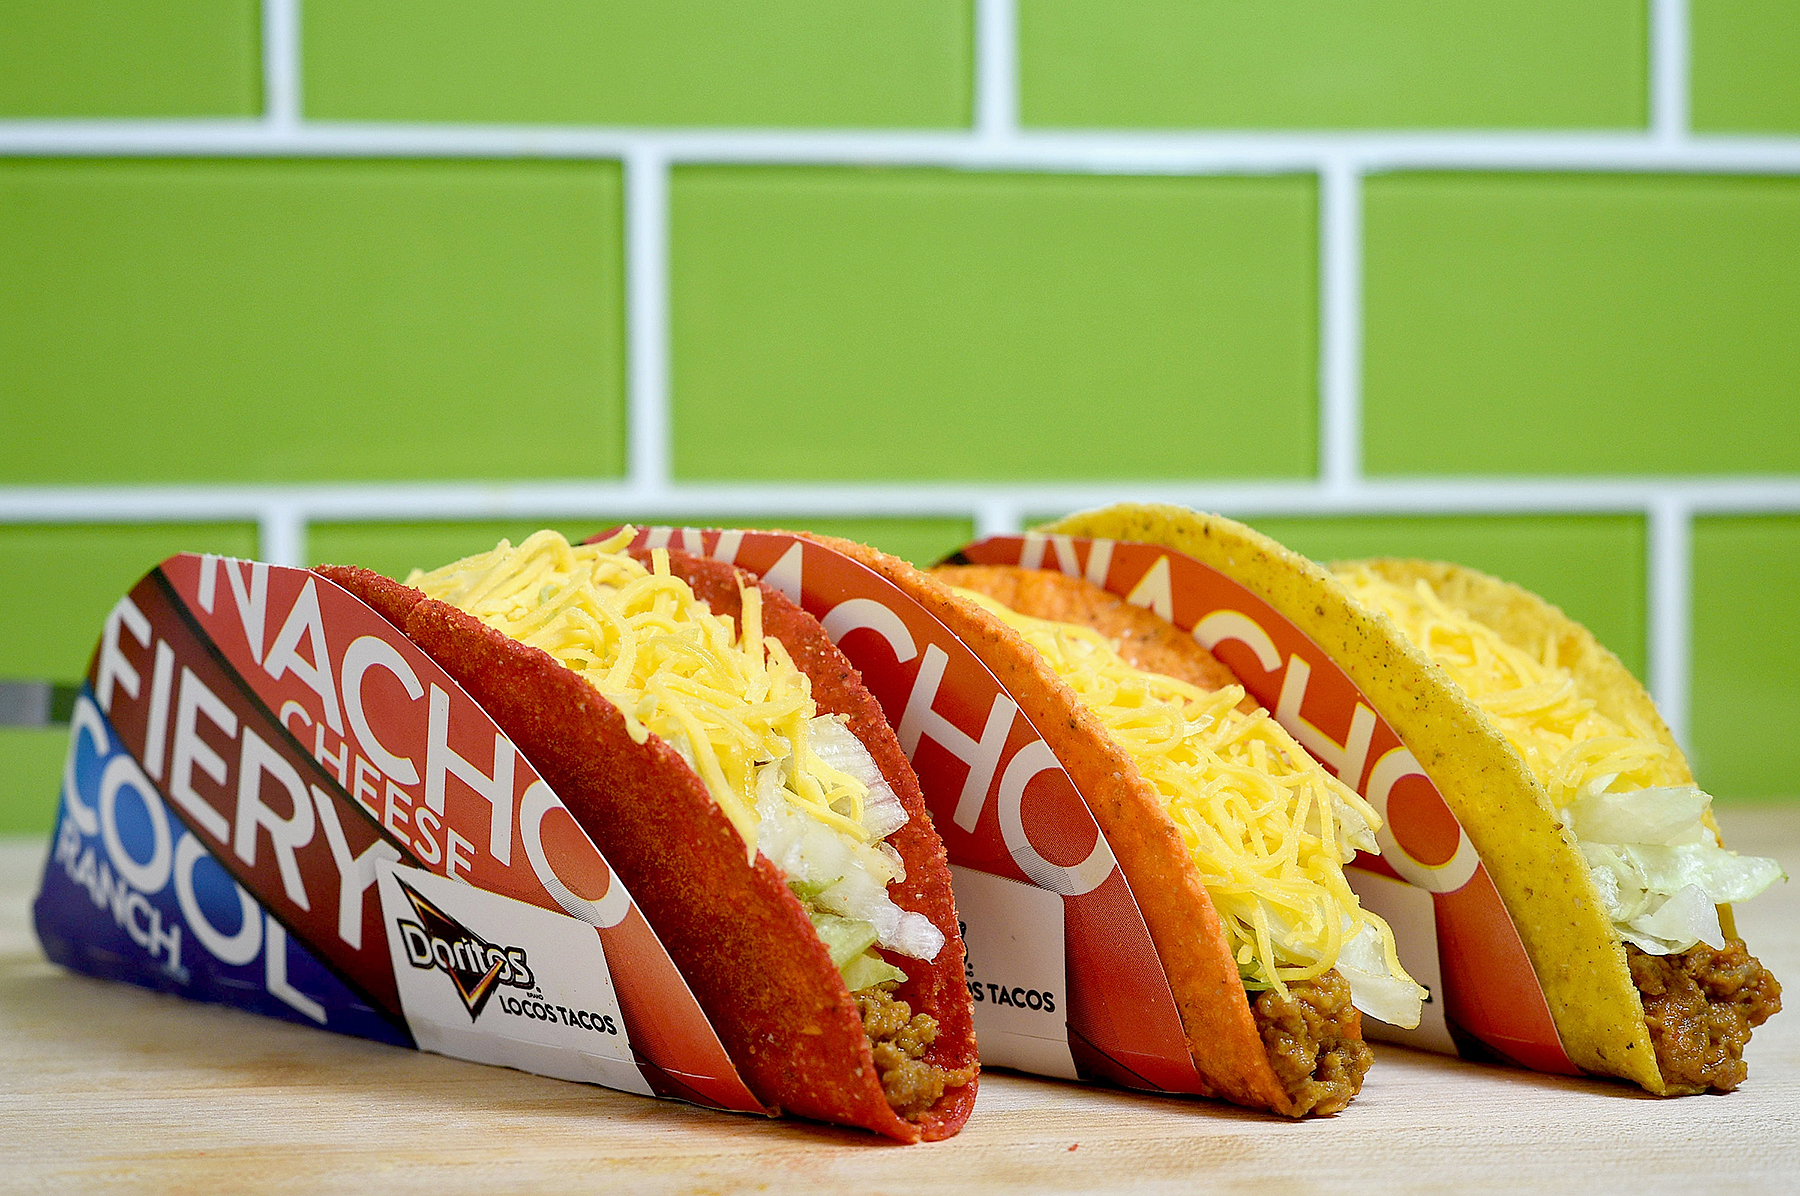 Free Taco Bell tacos coming Wednesday - thanks to the Golden State Warriors!